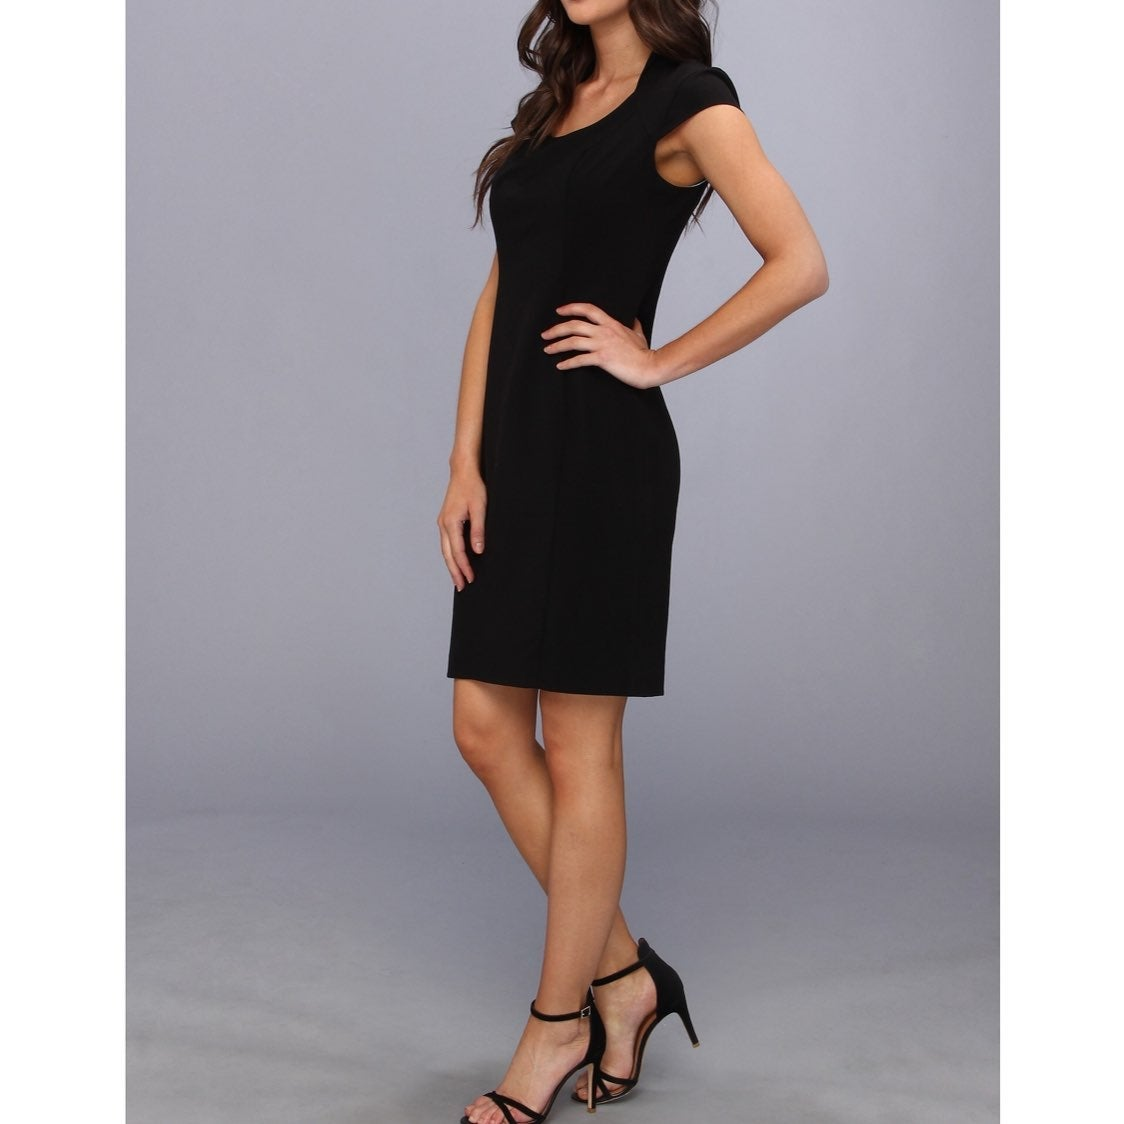 Andrew Marc New York black dress